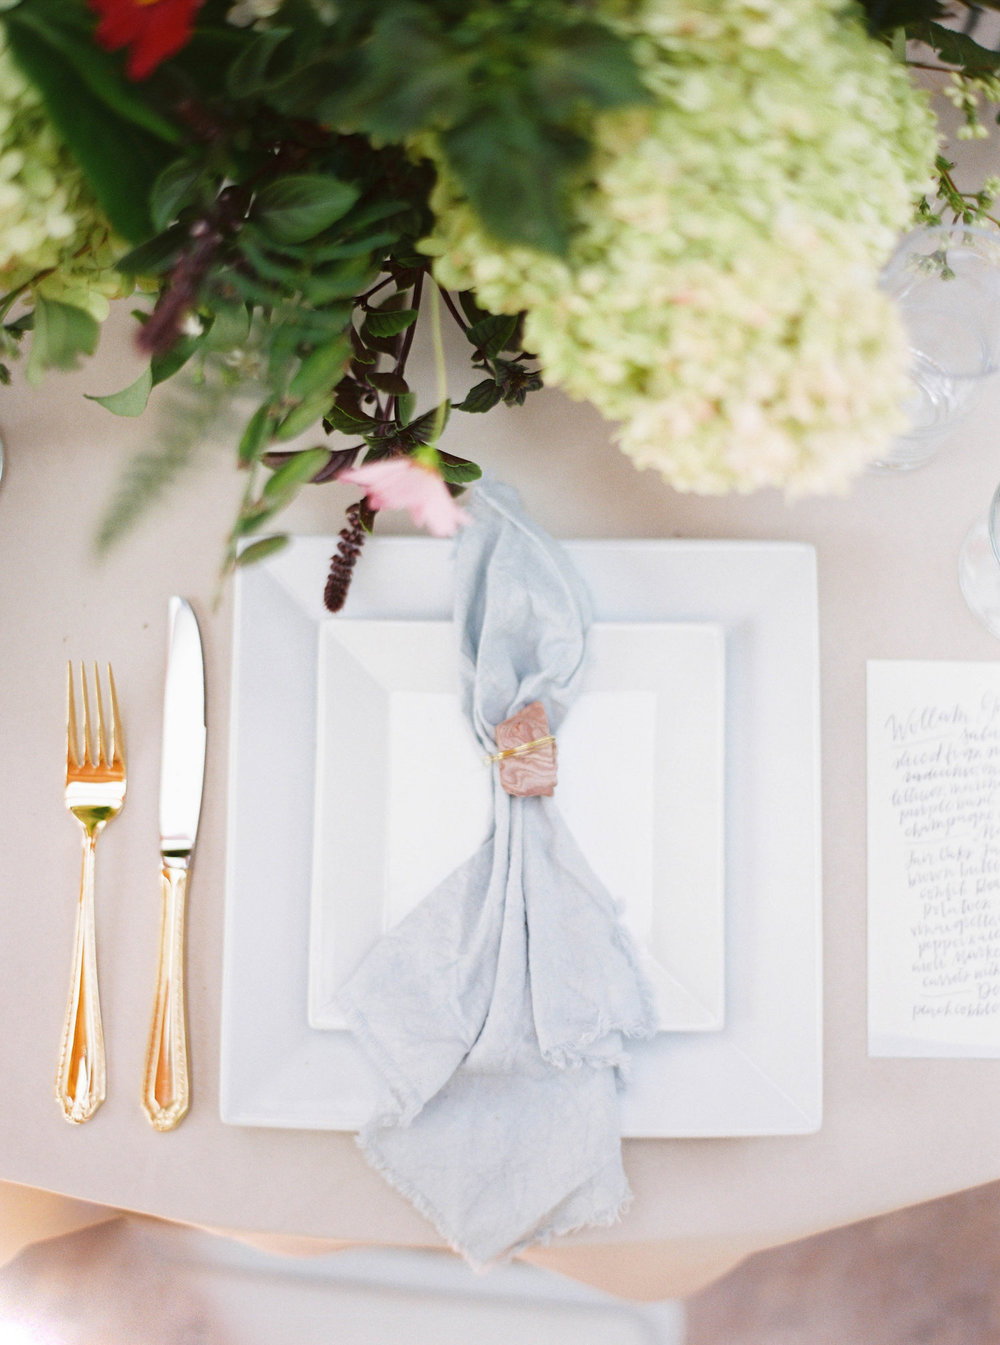 amelia_johnson_photography_place_setting00033.jpg